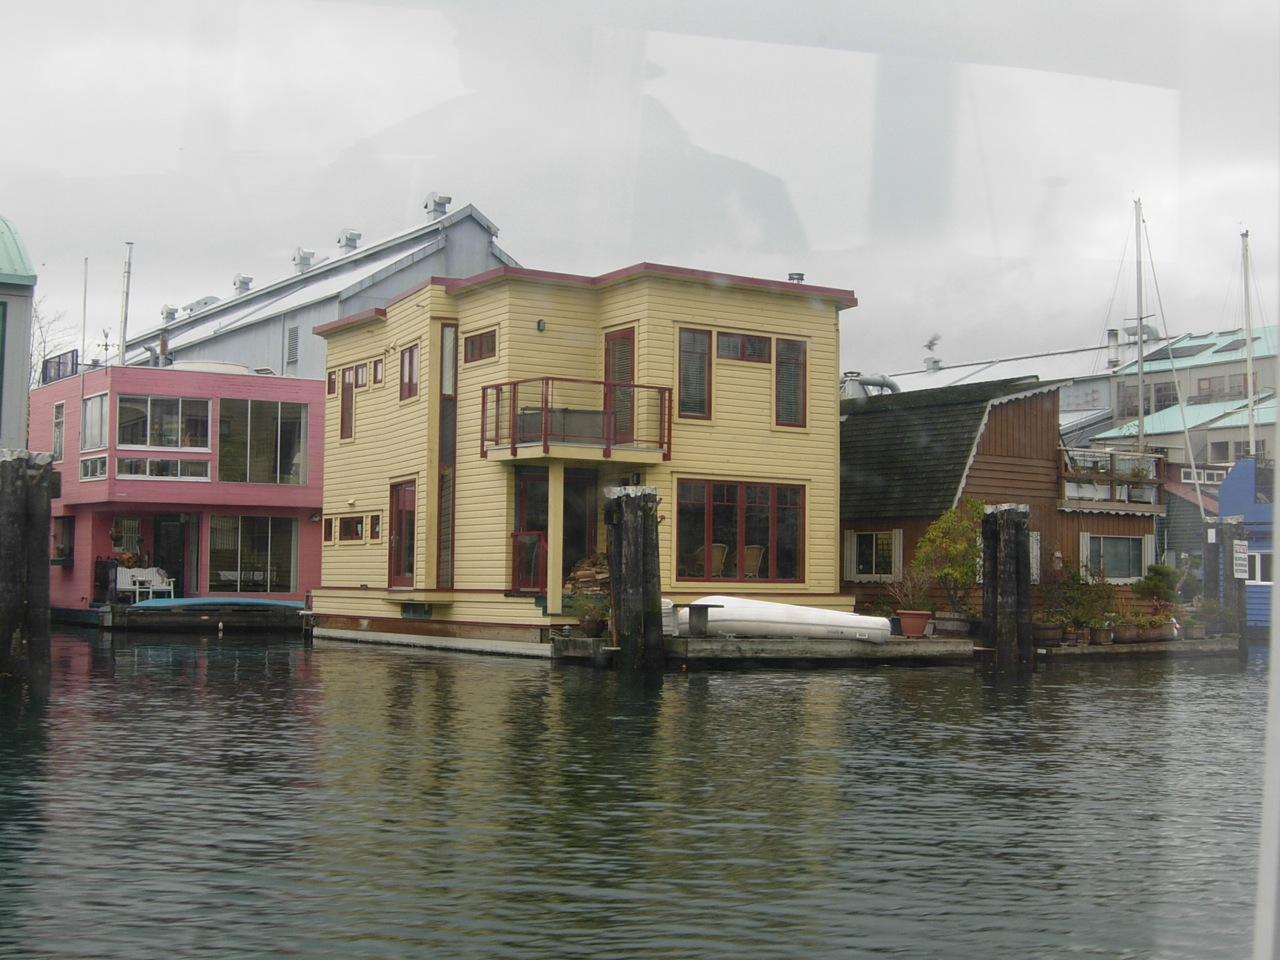 Floating homes next to Granville Island in False Creek, Vancouver, British Columbia